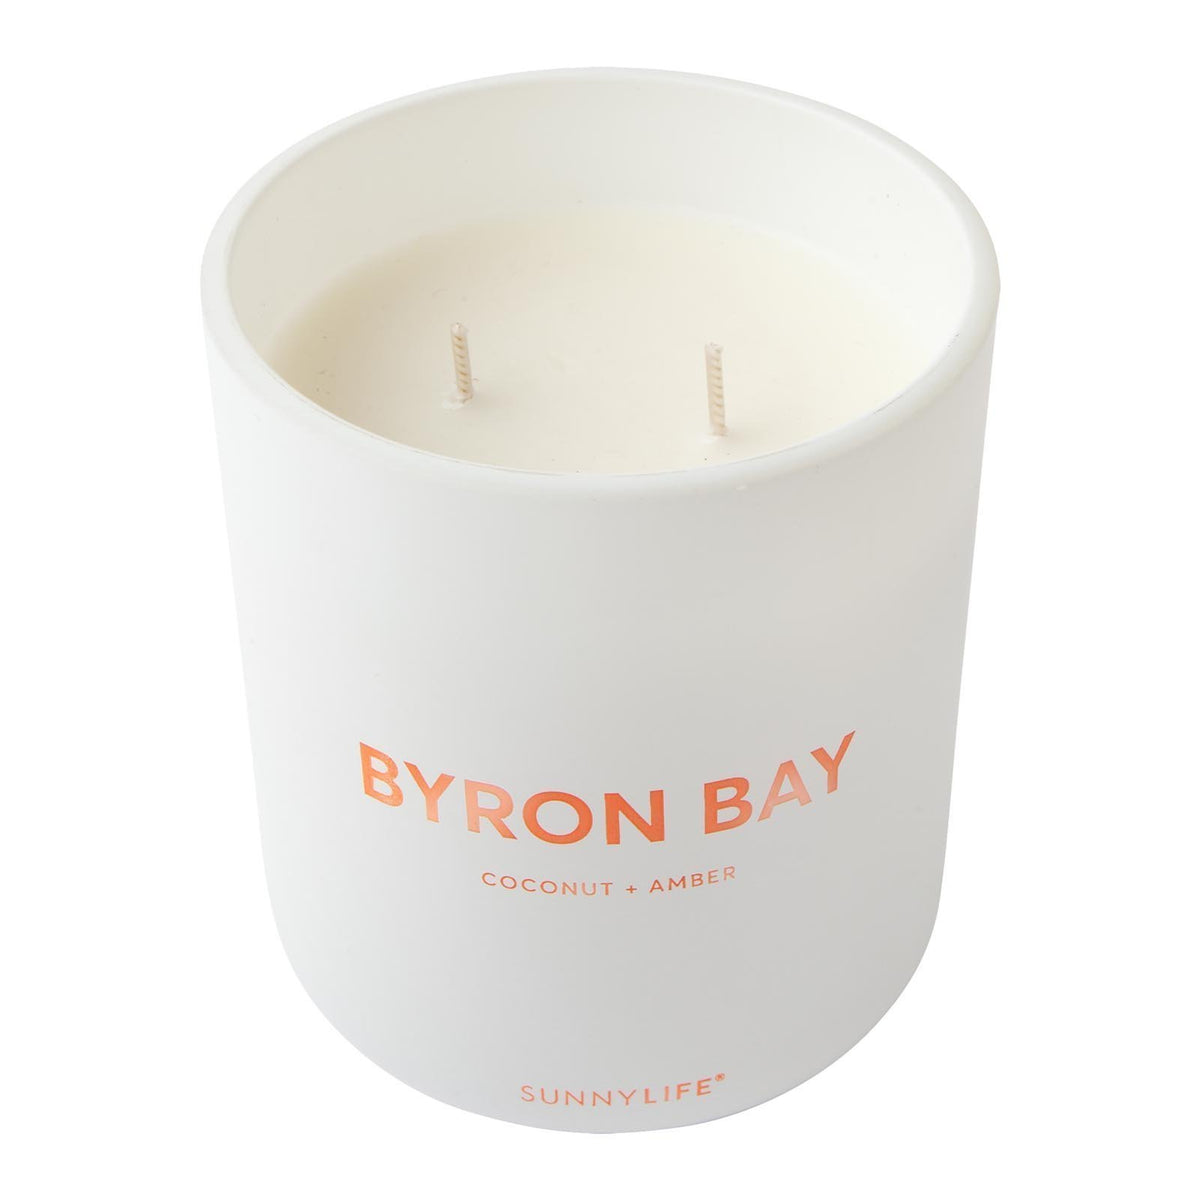 Sunnylife | Scented Candle | Byron Bay - Large